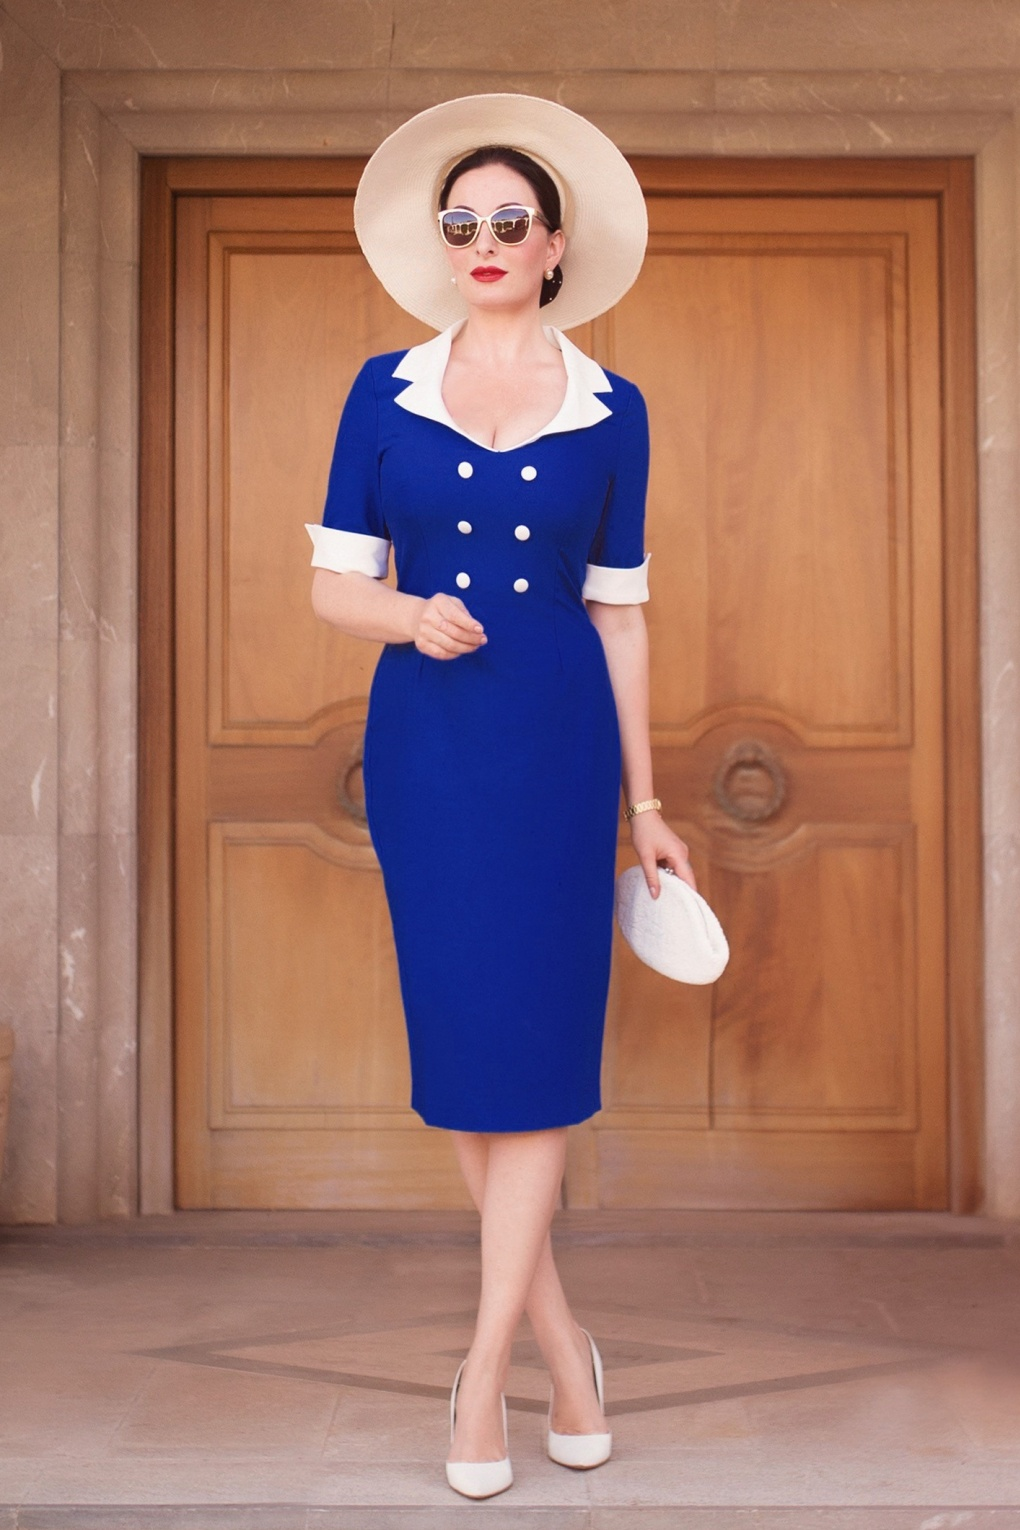 Sailor Dresses, Nautical Theme Dress, WW2 Dresses 50s Janice Pencil Dress in Royal Blue £70.03 AT vintagedancer.com